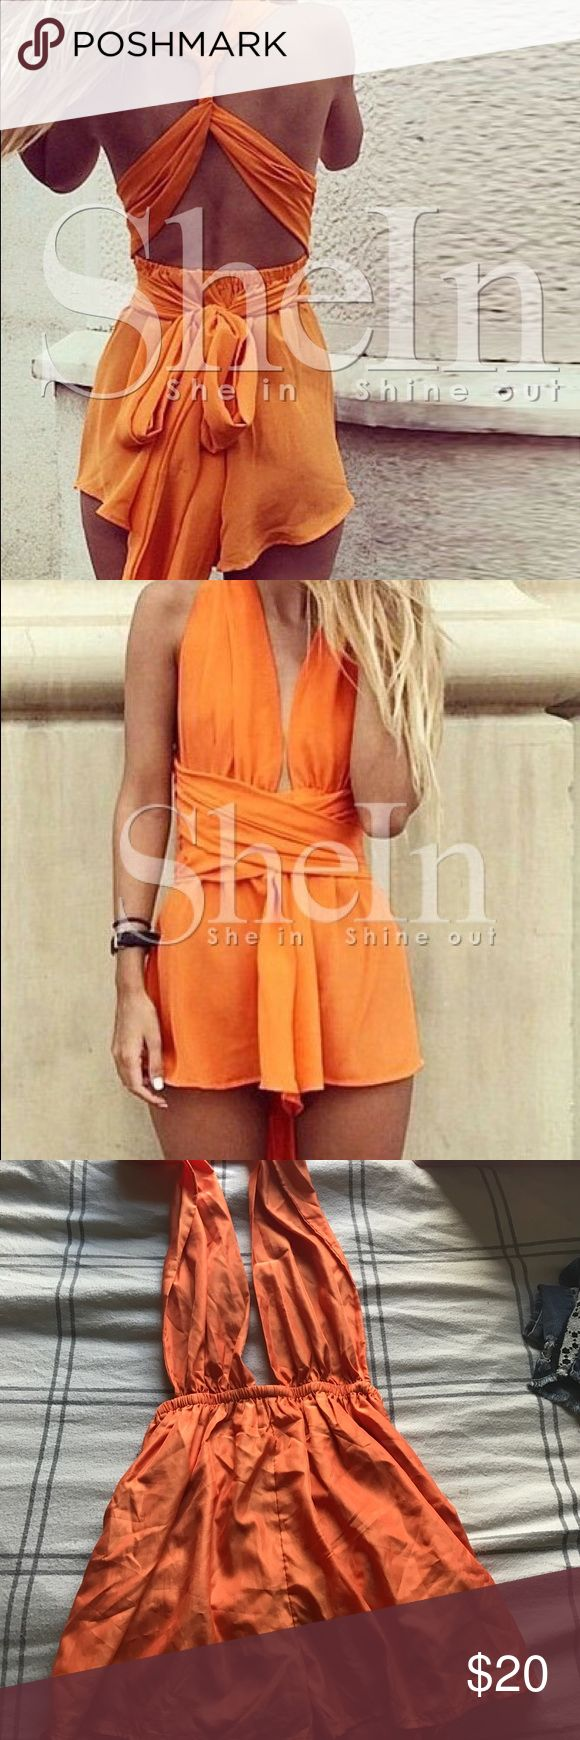 Rare Orange sleeveless backless playsuit Sold out online, orange, sleeveless, backless play suit. Super cute, never worn, brand new! ROMWE Pants Jumpsuits & Rompers